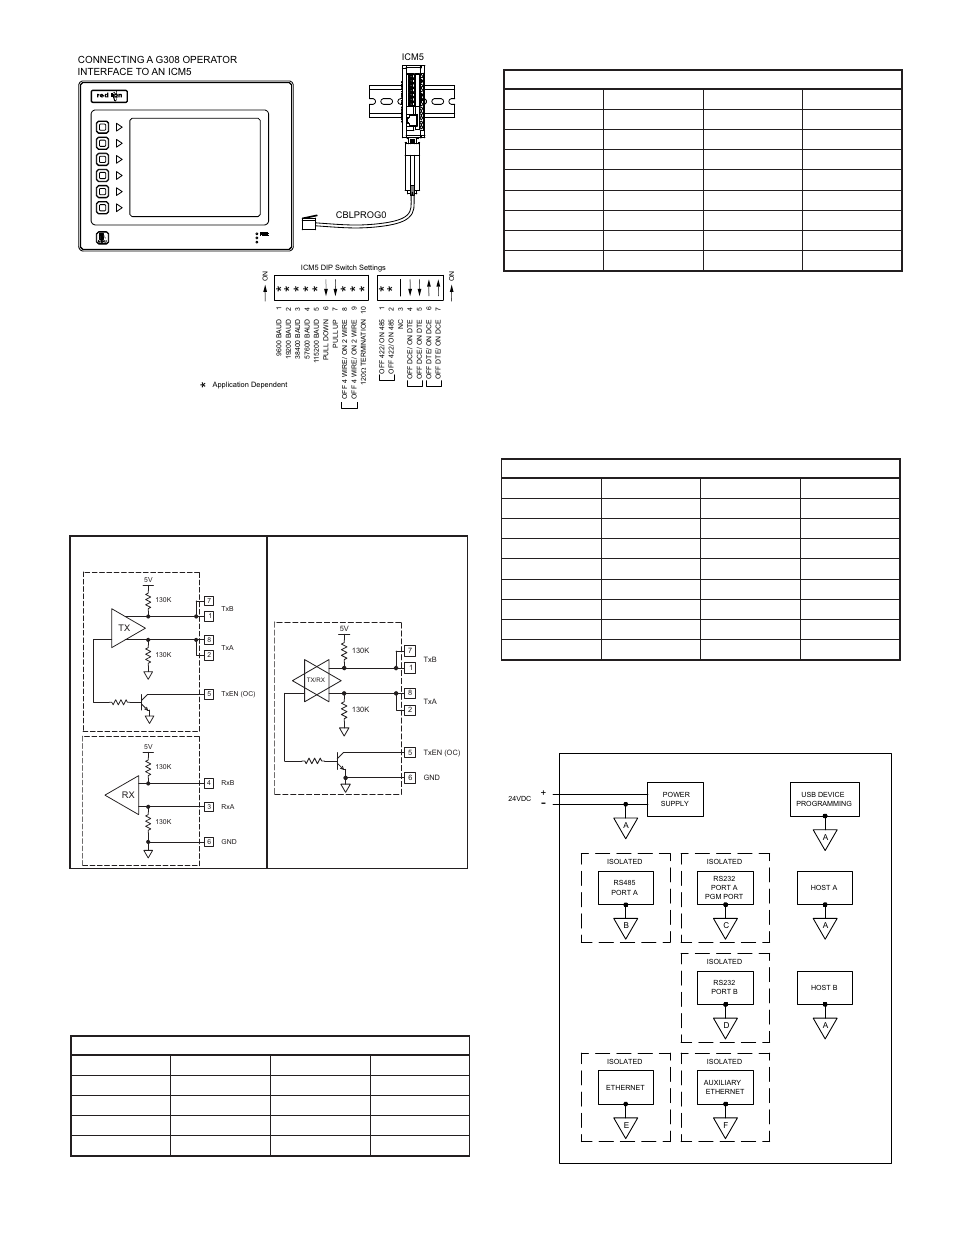 Examples Of Rs485 2 Wire Connections Dh485 Communications G3 To Rs 485 2wire Diagram Modular Controller